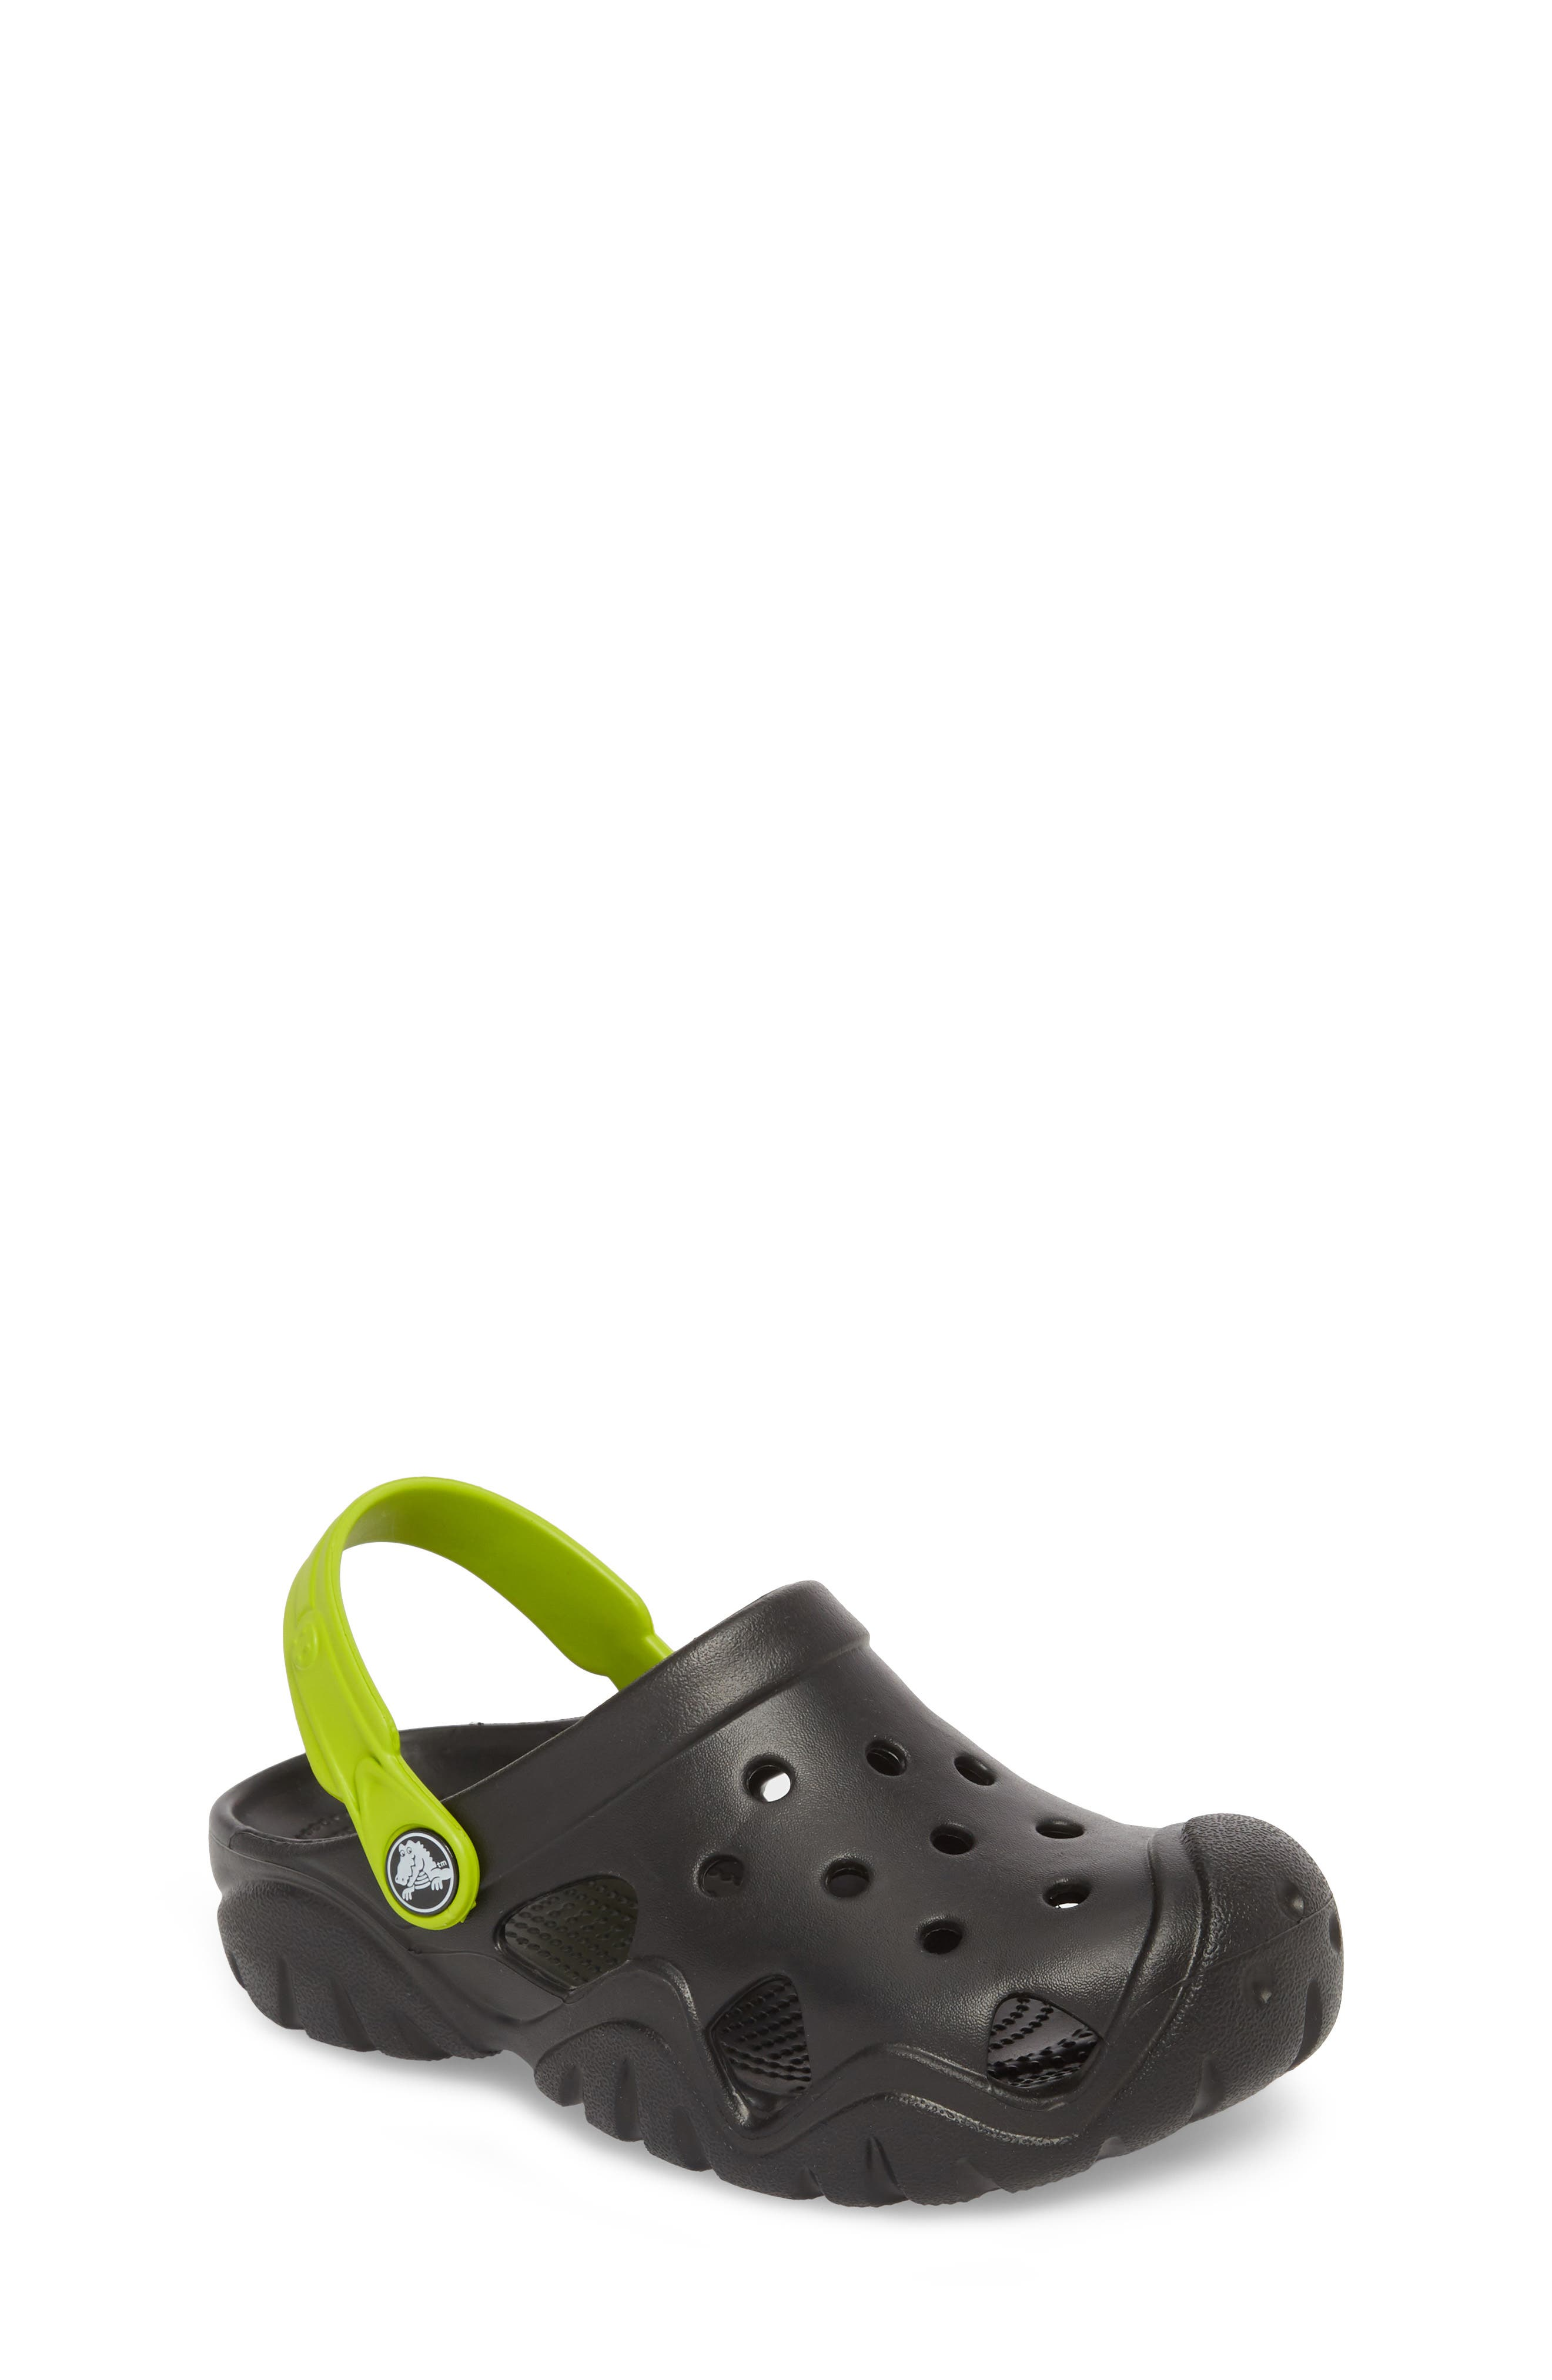 Swiftwater Clogs,                             Main thumbnail 1, color,                             001